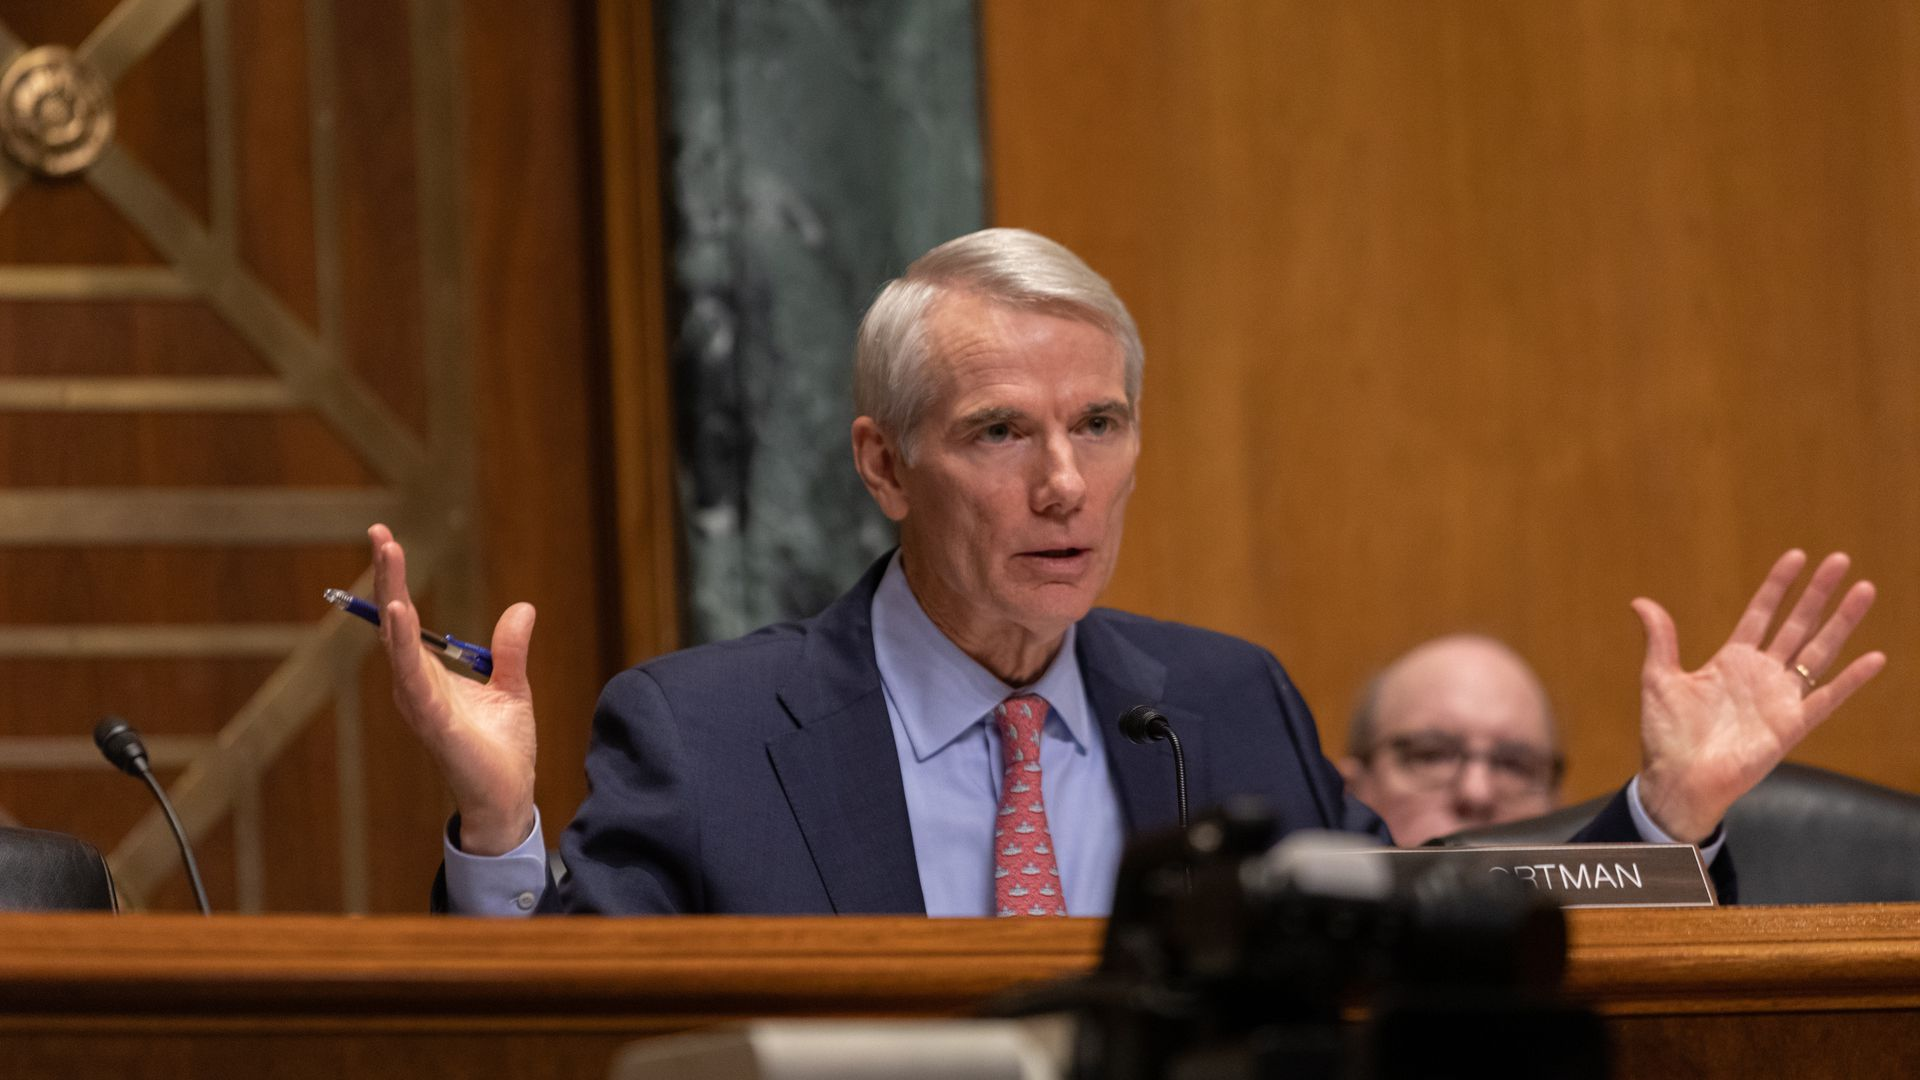 Rob Portman sits at a dais with his nameplate in front of it.